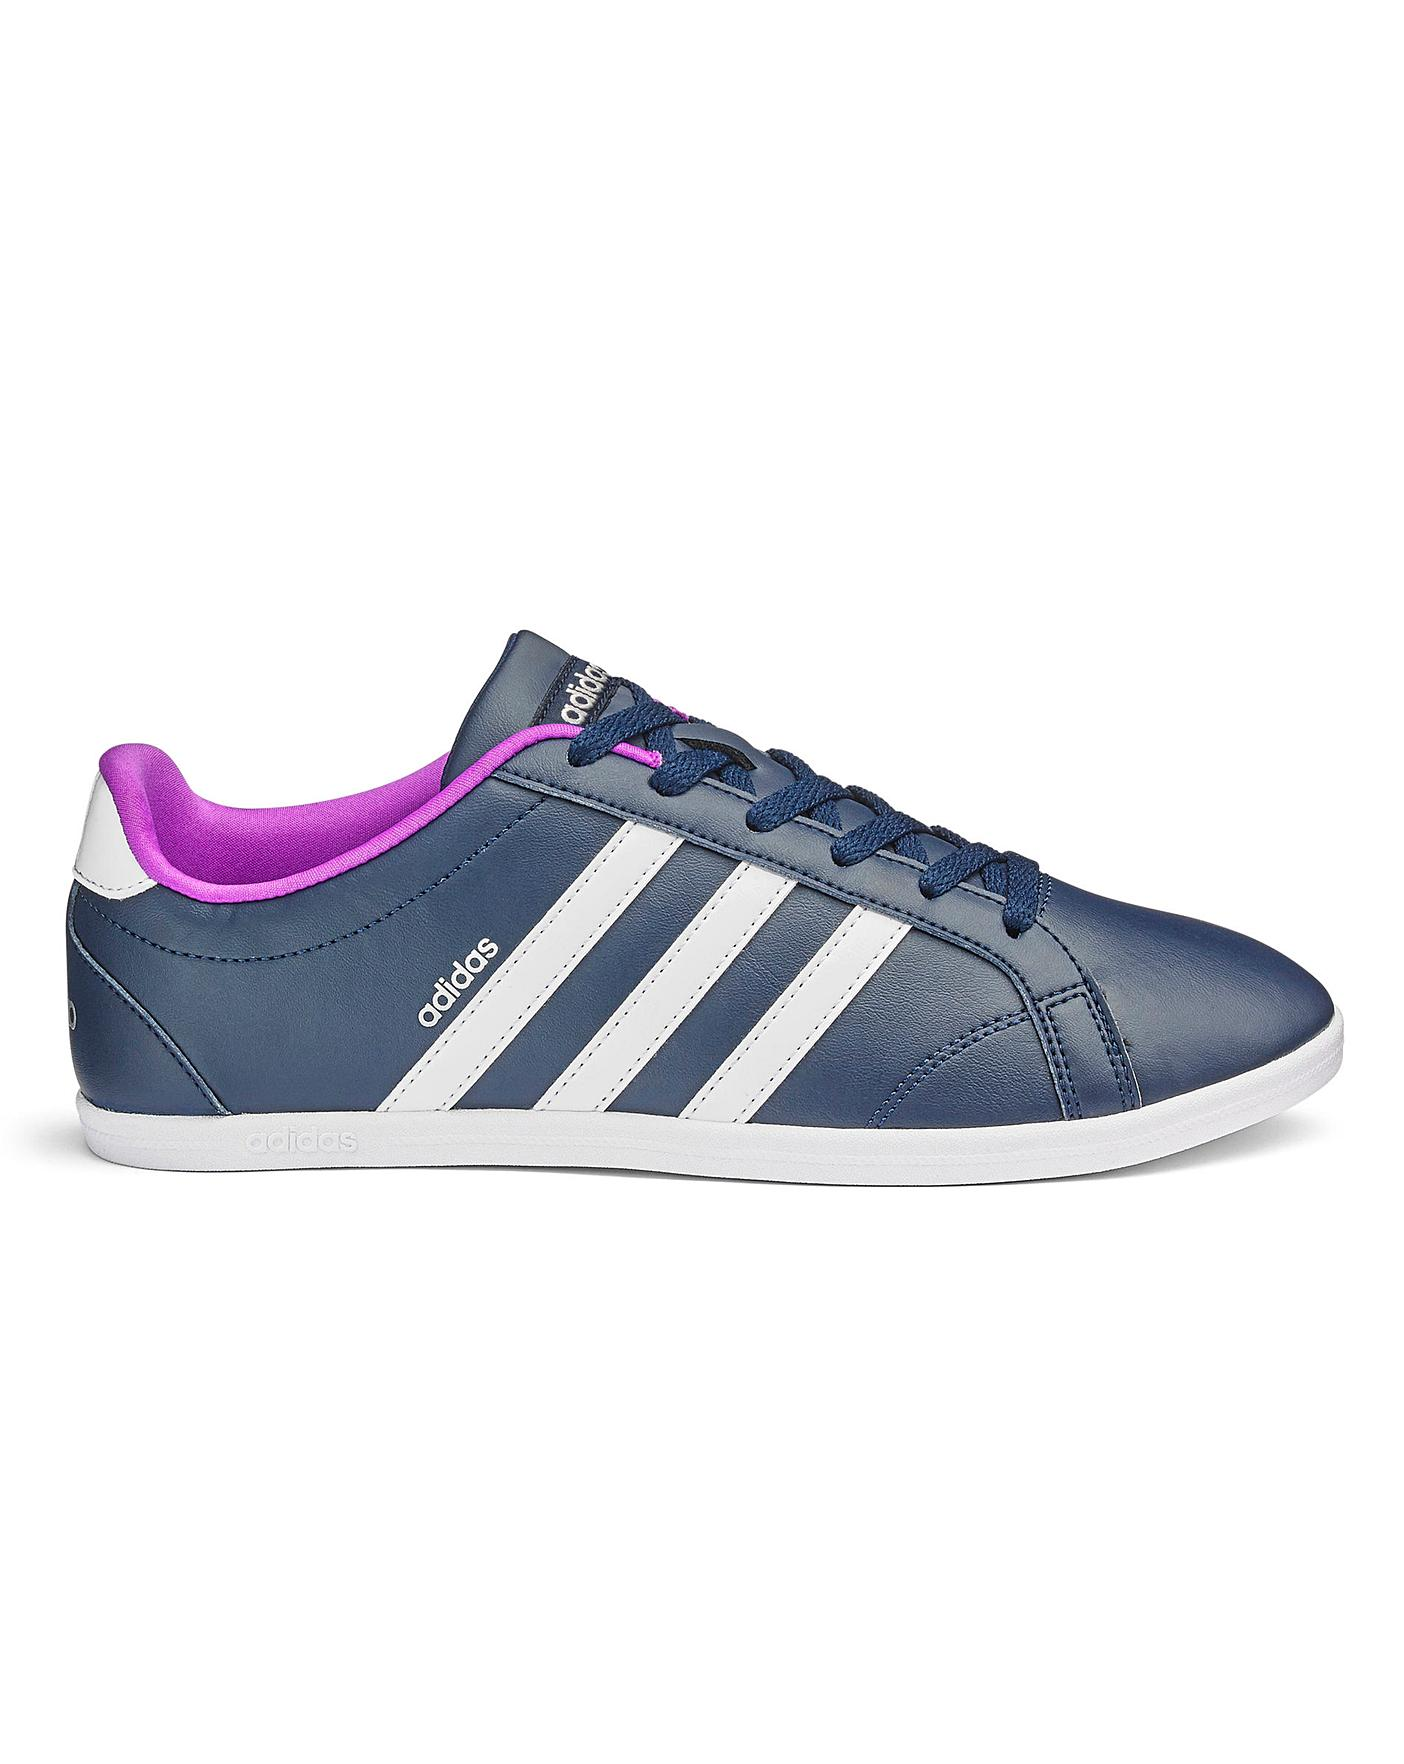 Neu Details about adidas Coneo QT Trainers Womens Athleisure